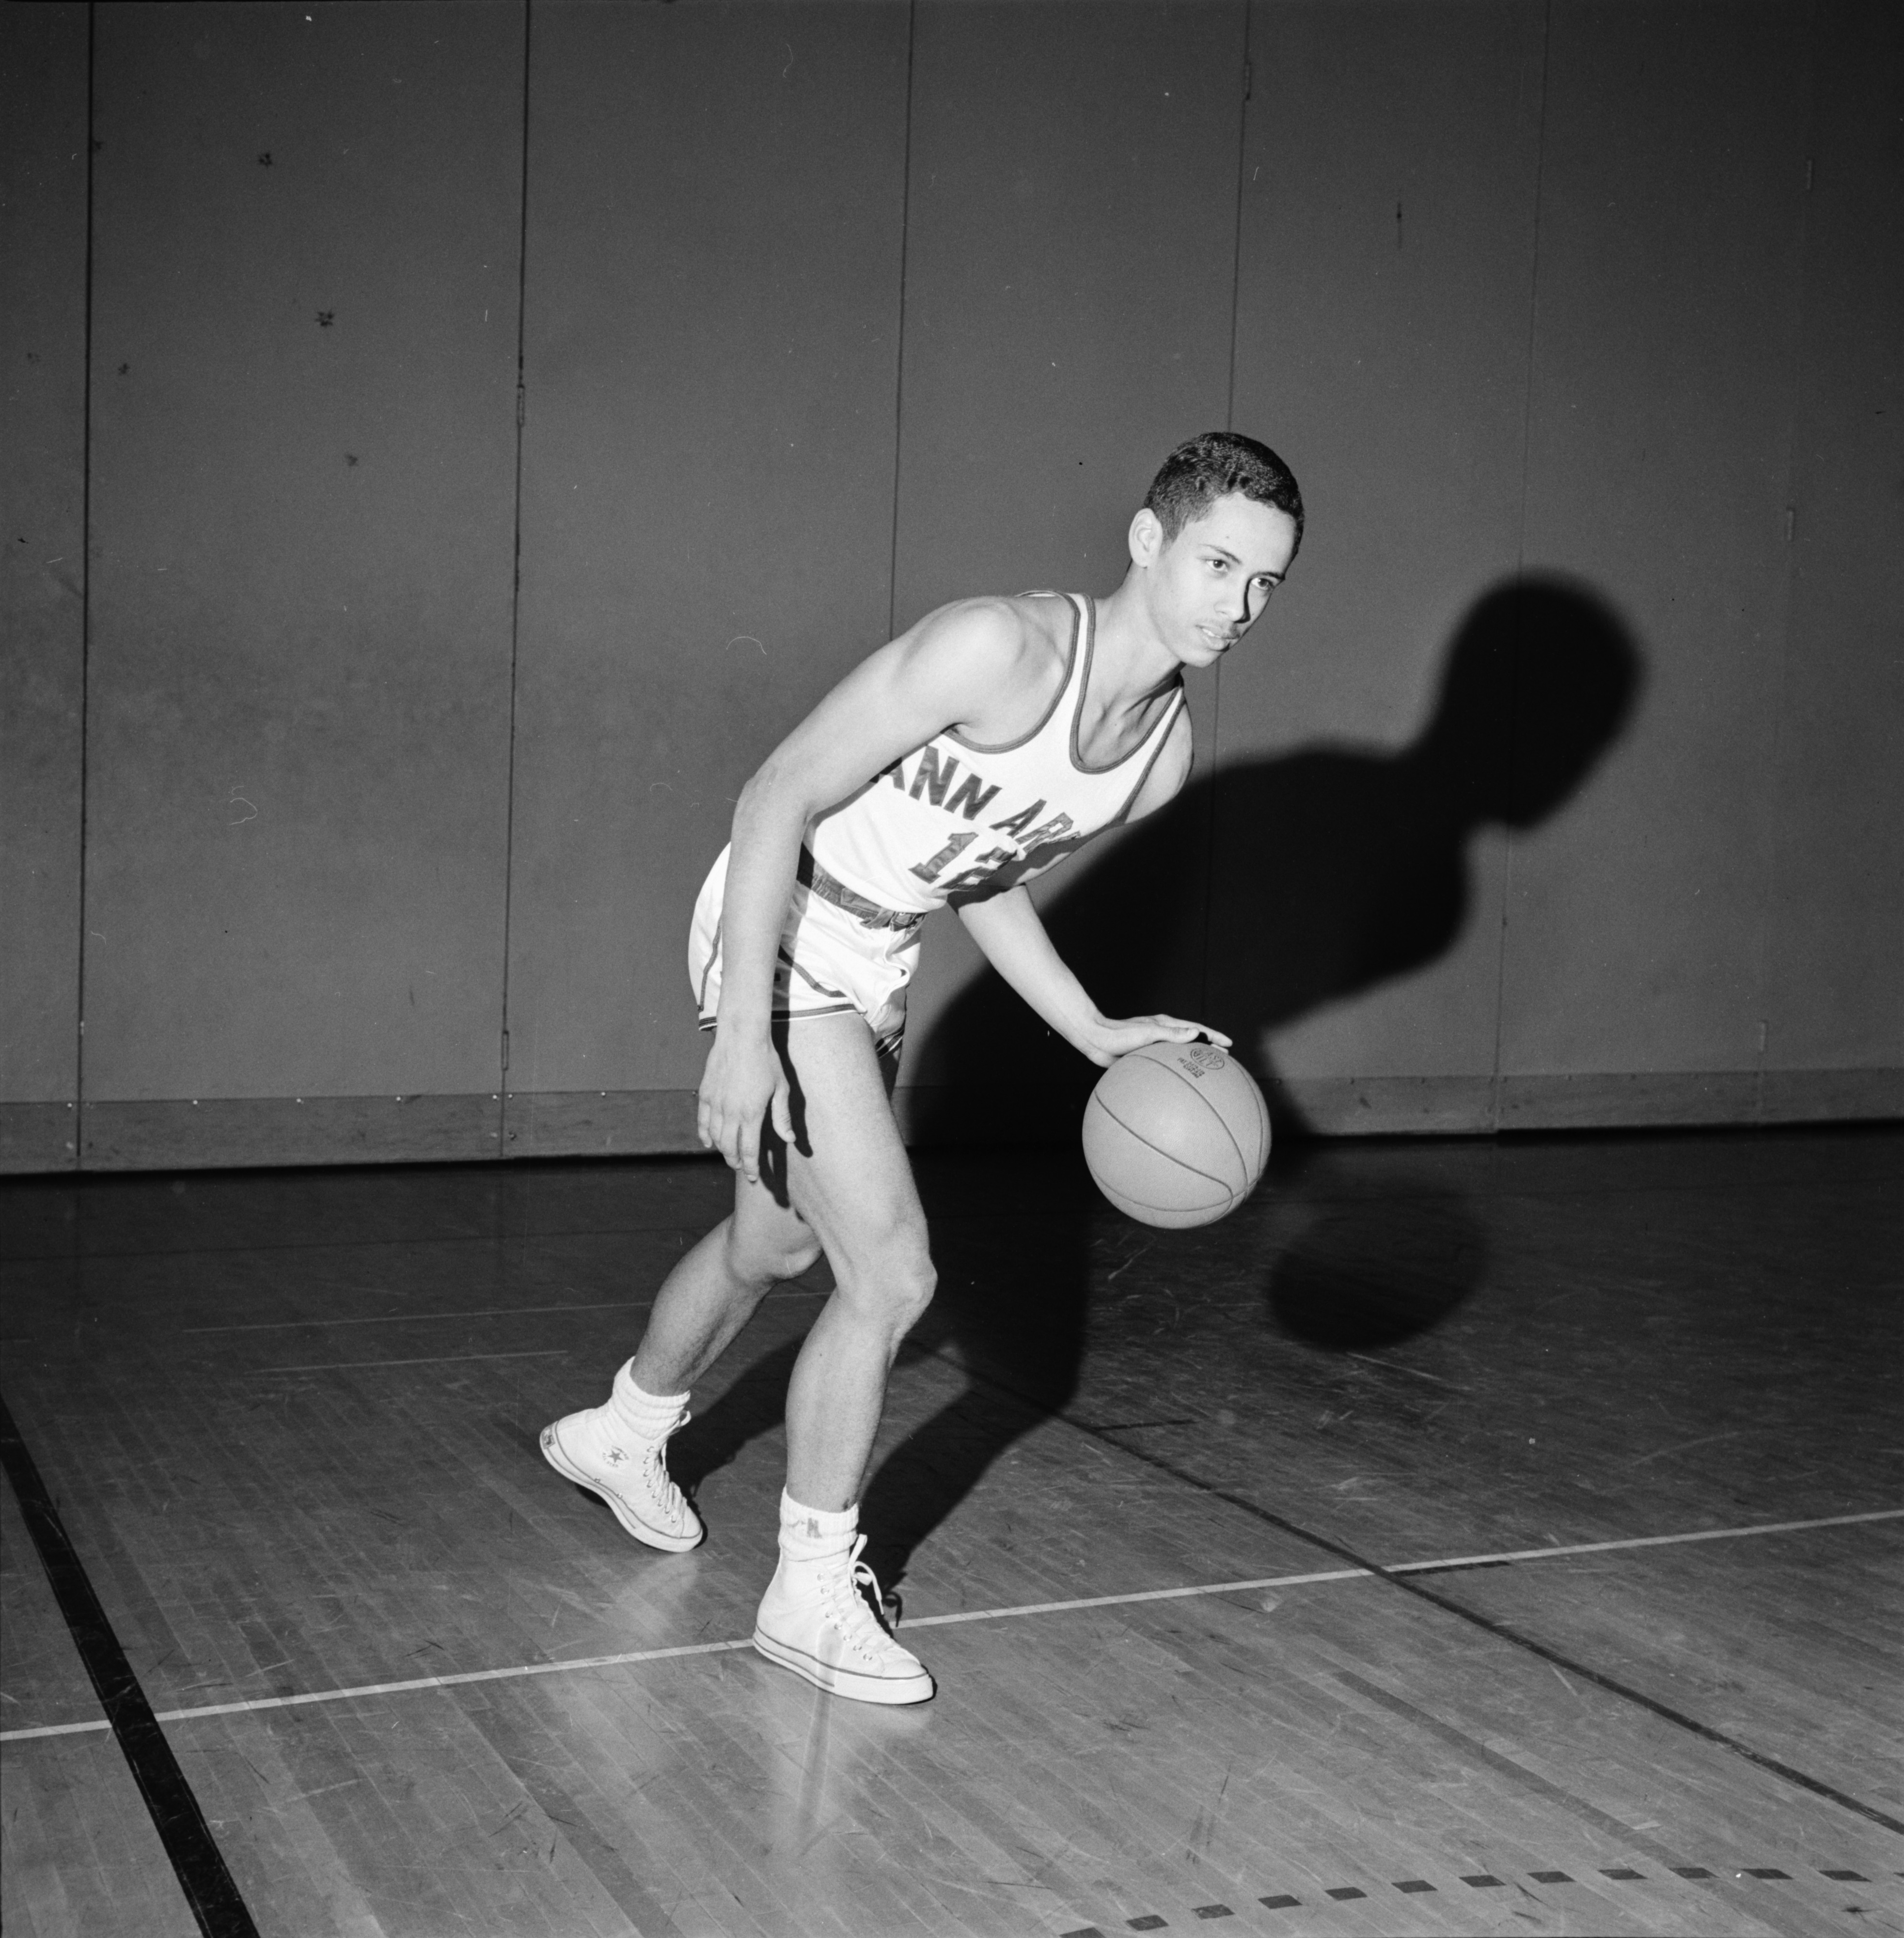 Harold Simons is Captain of Ann Arbor High Basketball Team, March 1964 image